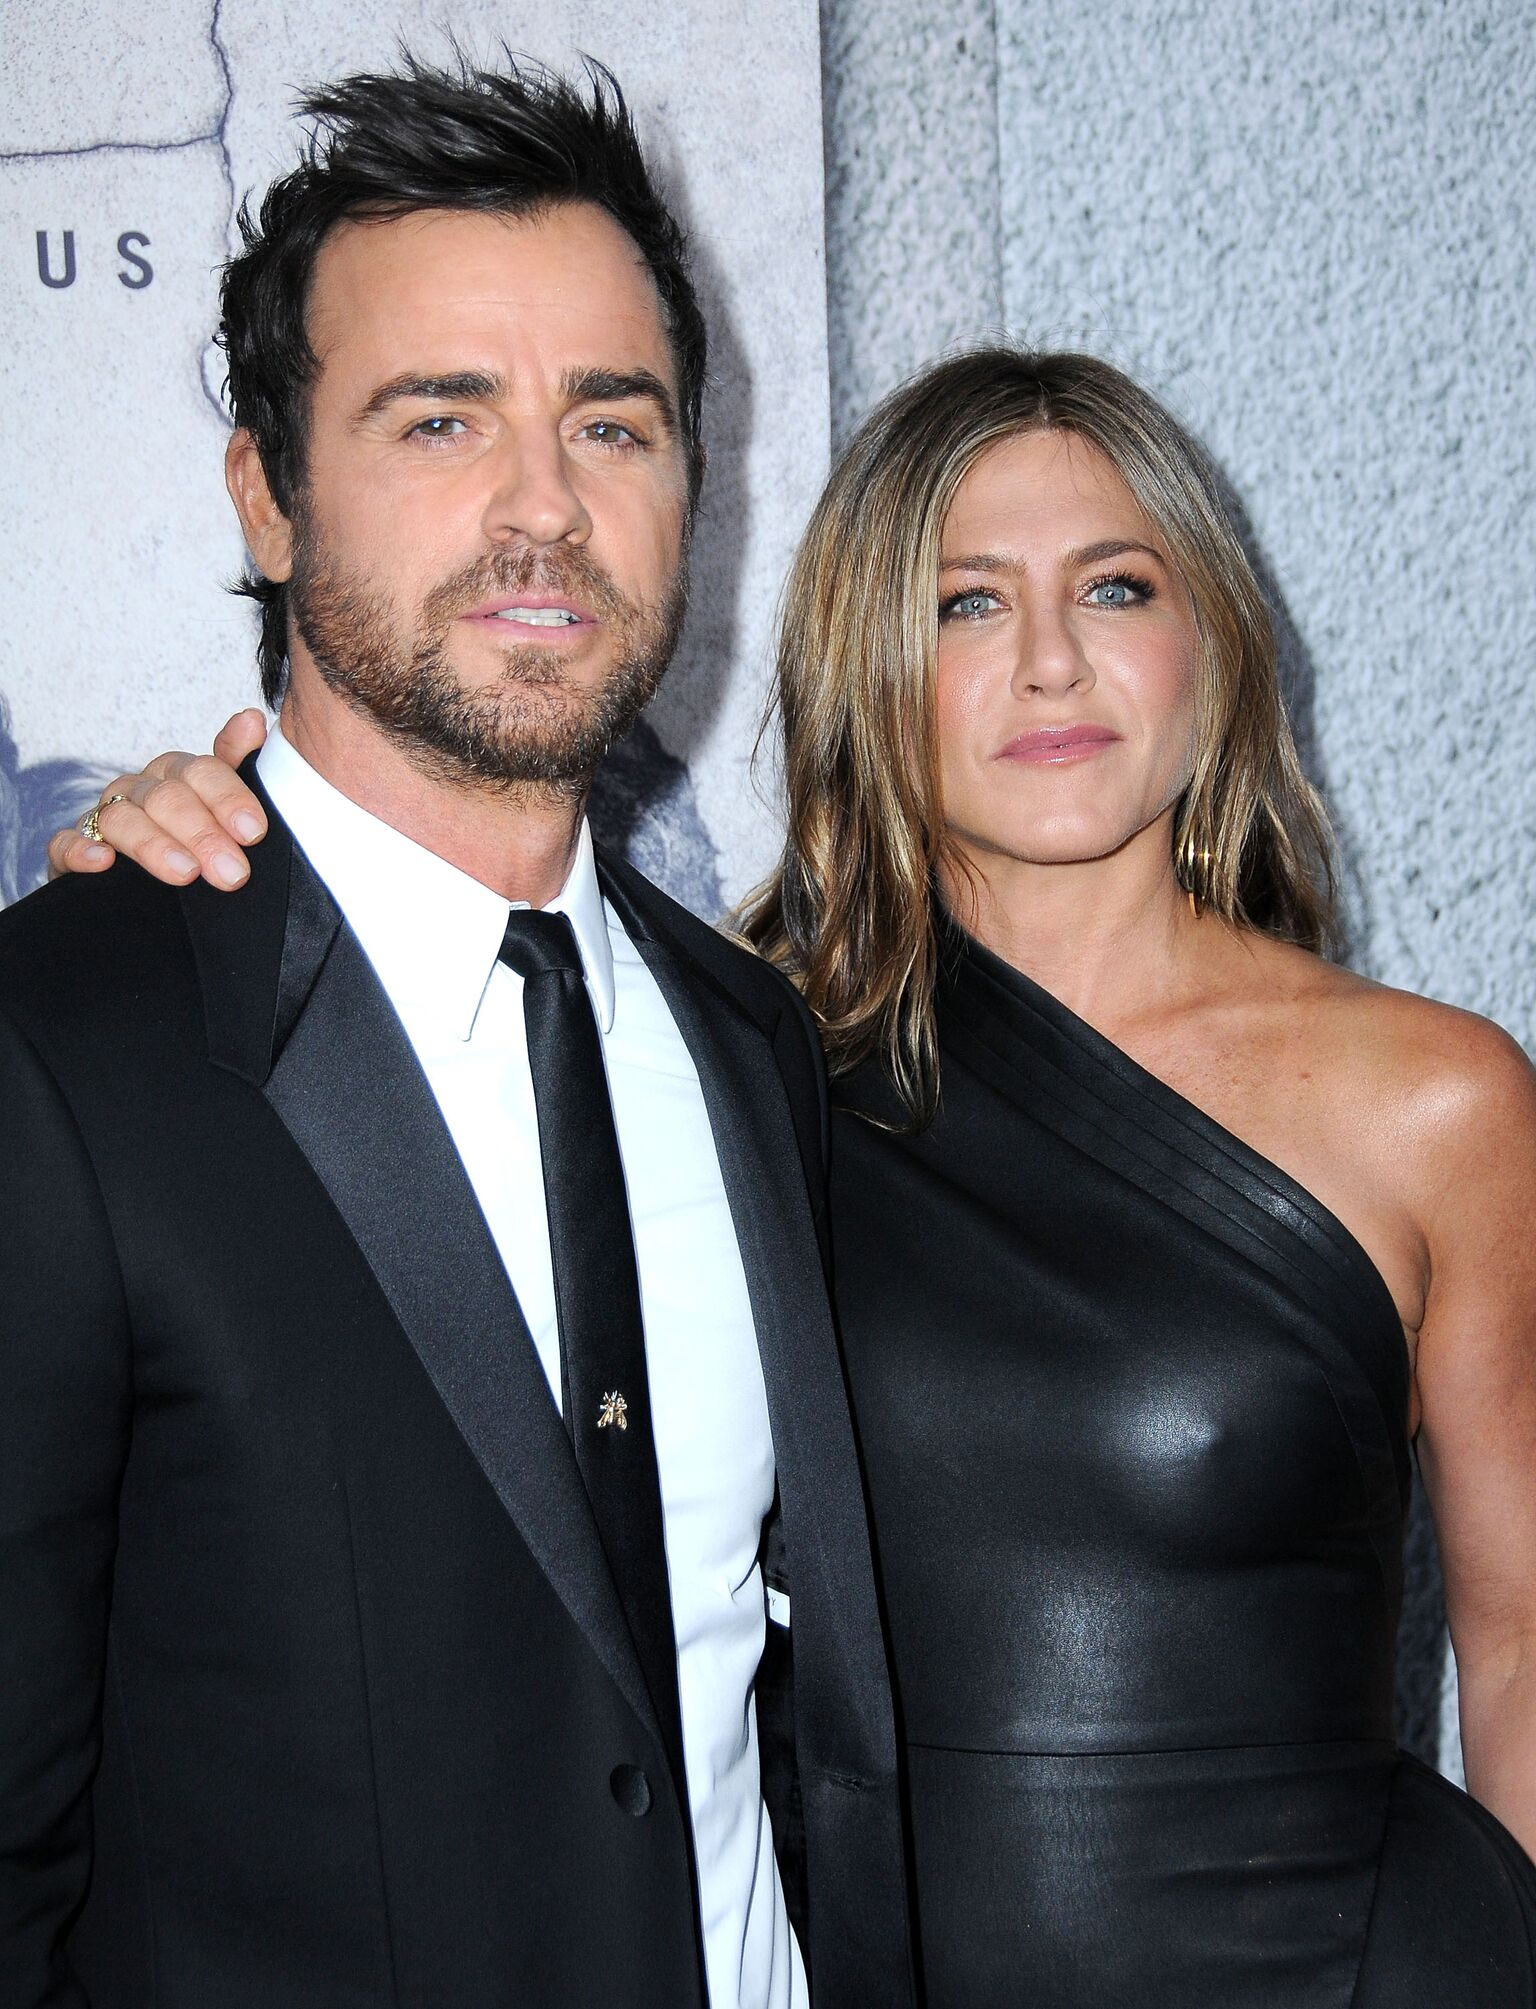 Justin Theroux and actress Jennifer Aniston attend the premiere of HBO's 'The Leftovers' Season 3 at Avalon Hollywood | Getty Images